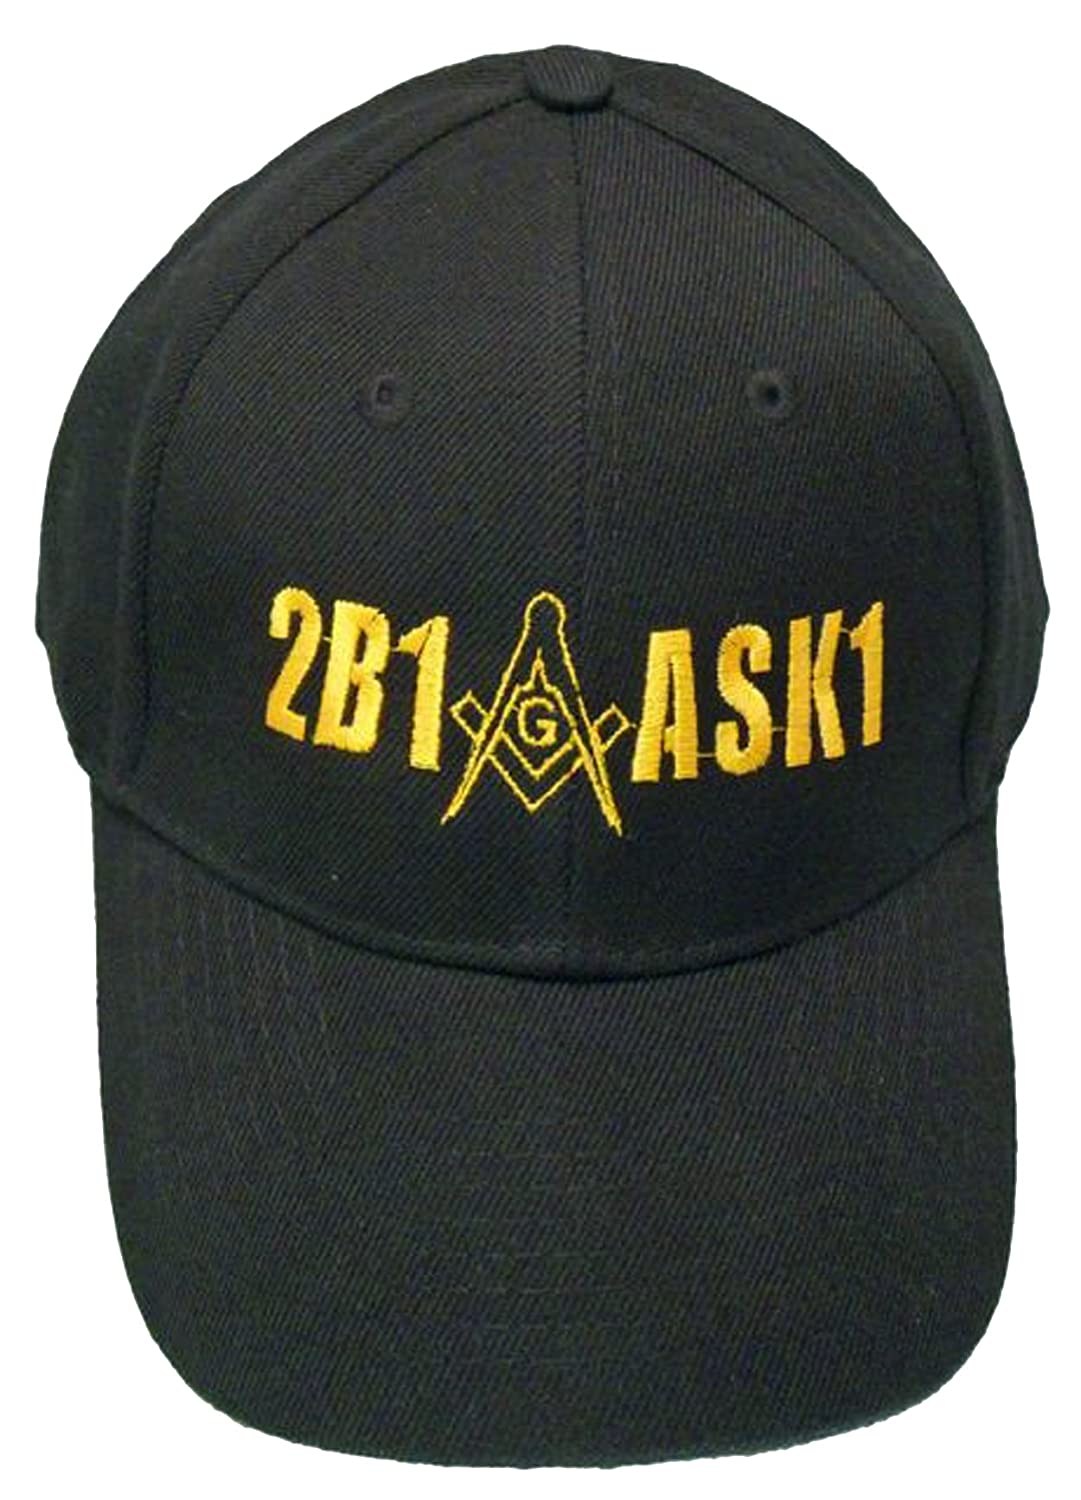 1c65f9d99b4 Amazon.com  2B1ASK1 Mason Baseball Cap 2B1 ASK1 Freemason Black Hat Mens   Sports   Outdoors